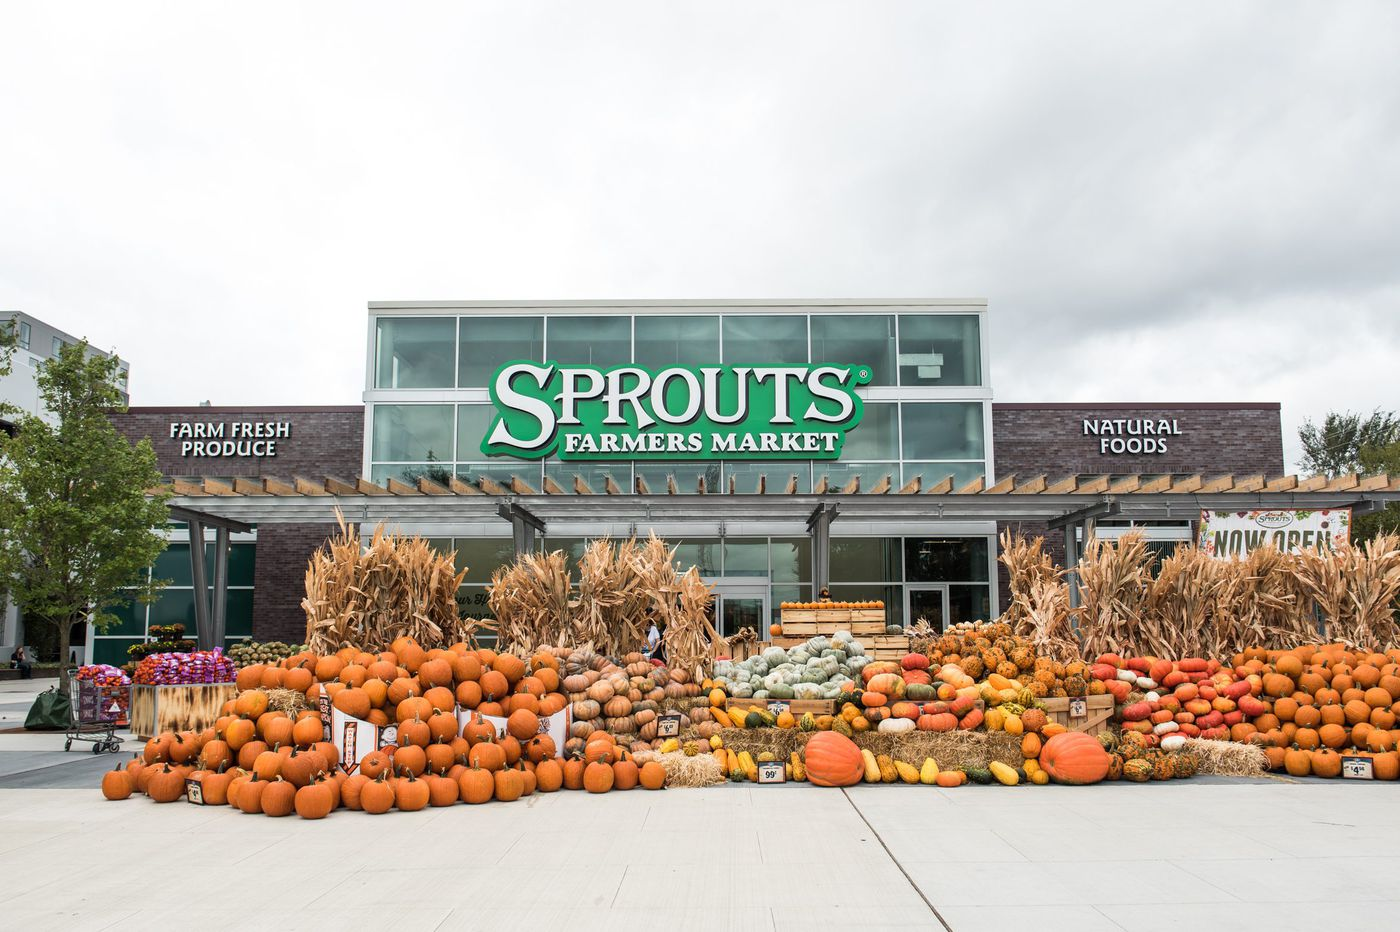 12 things we're buying at the new Sprouts Farmers Market